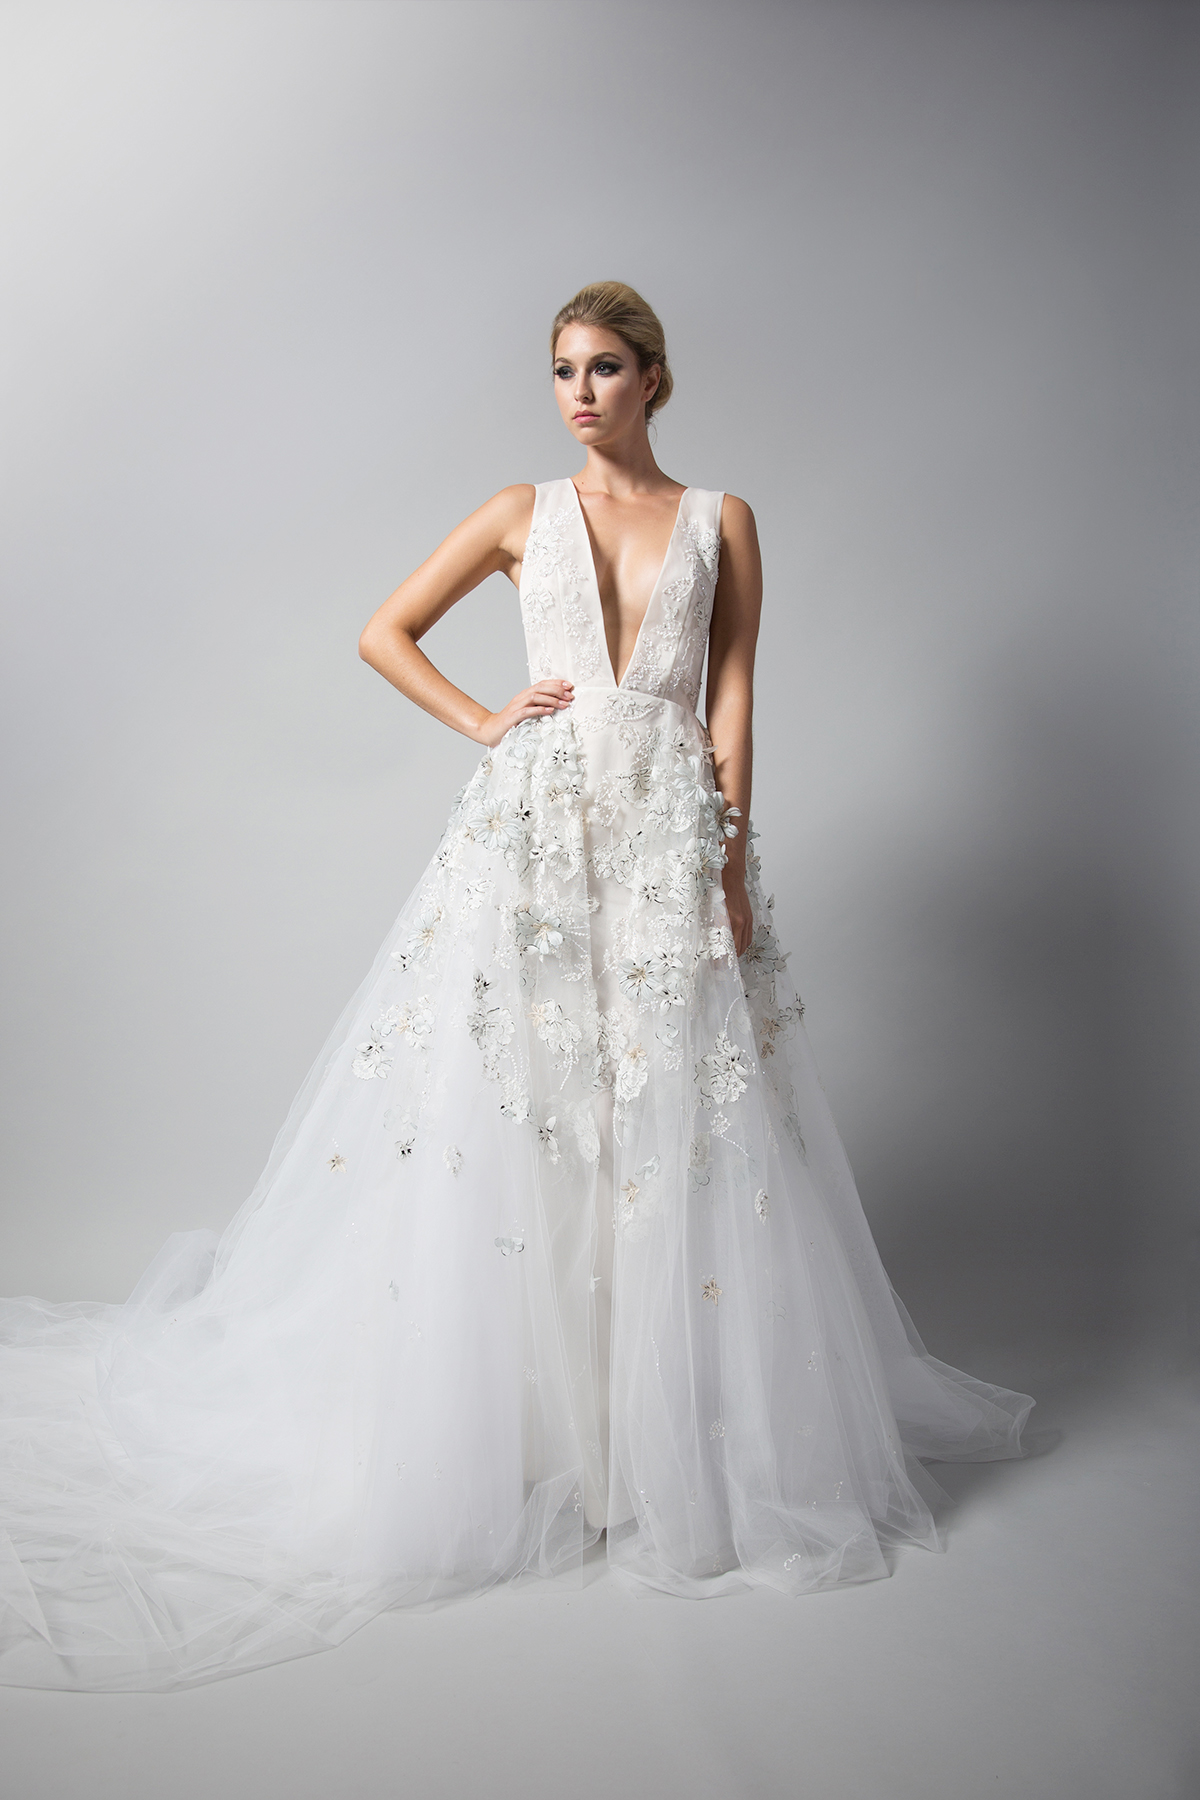 randi rahm tule wedding dress with straps and flower embellishments fall 2018